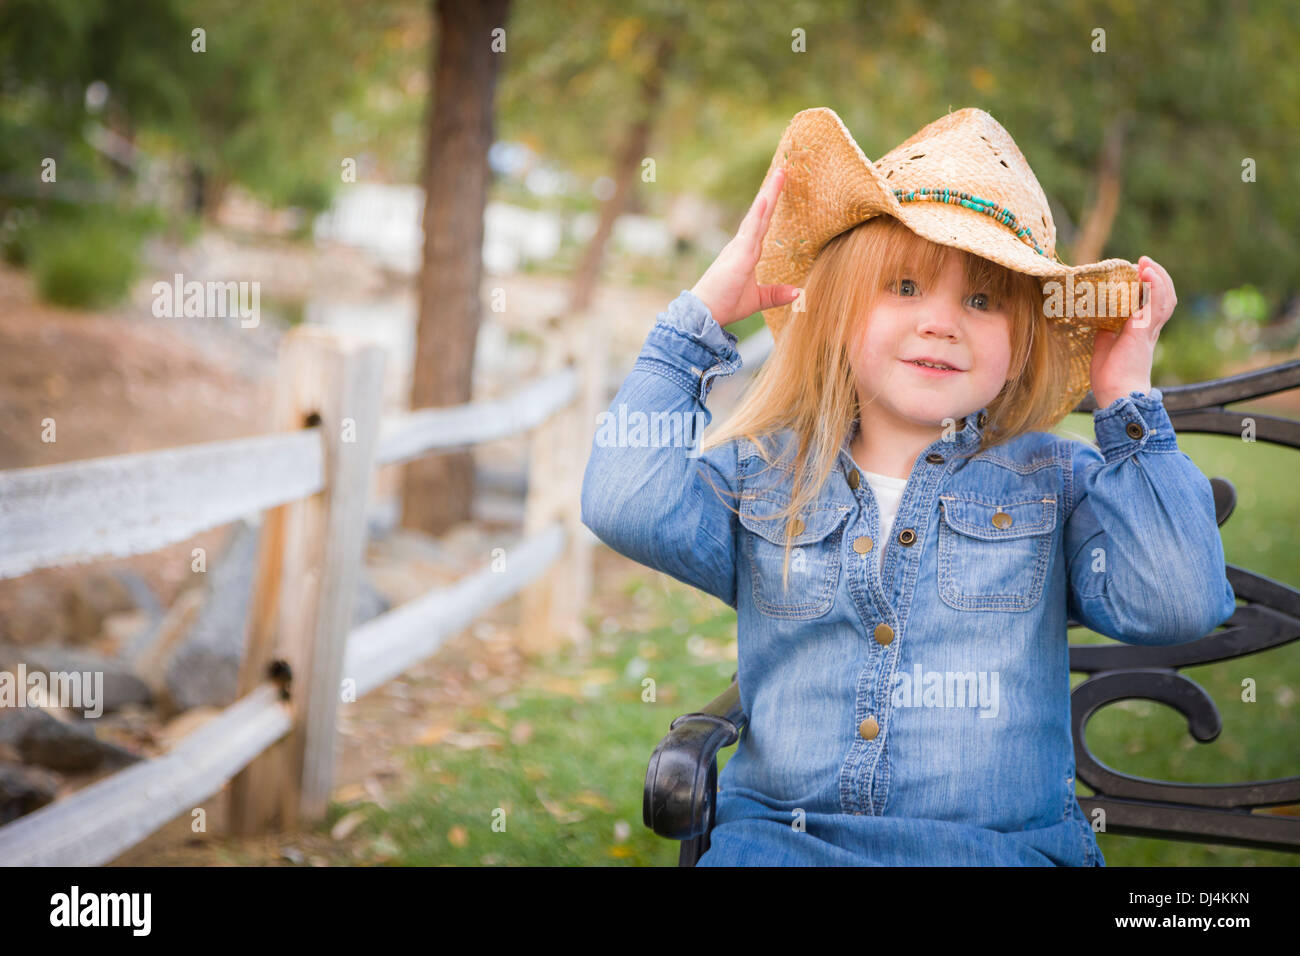 Cute Smiling Young Girl Wearing Cowboy Hat Posing for a Portrait Outside. - Stock Image